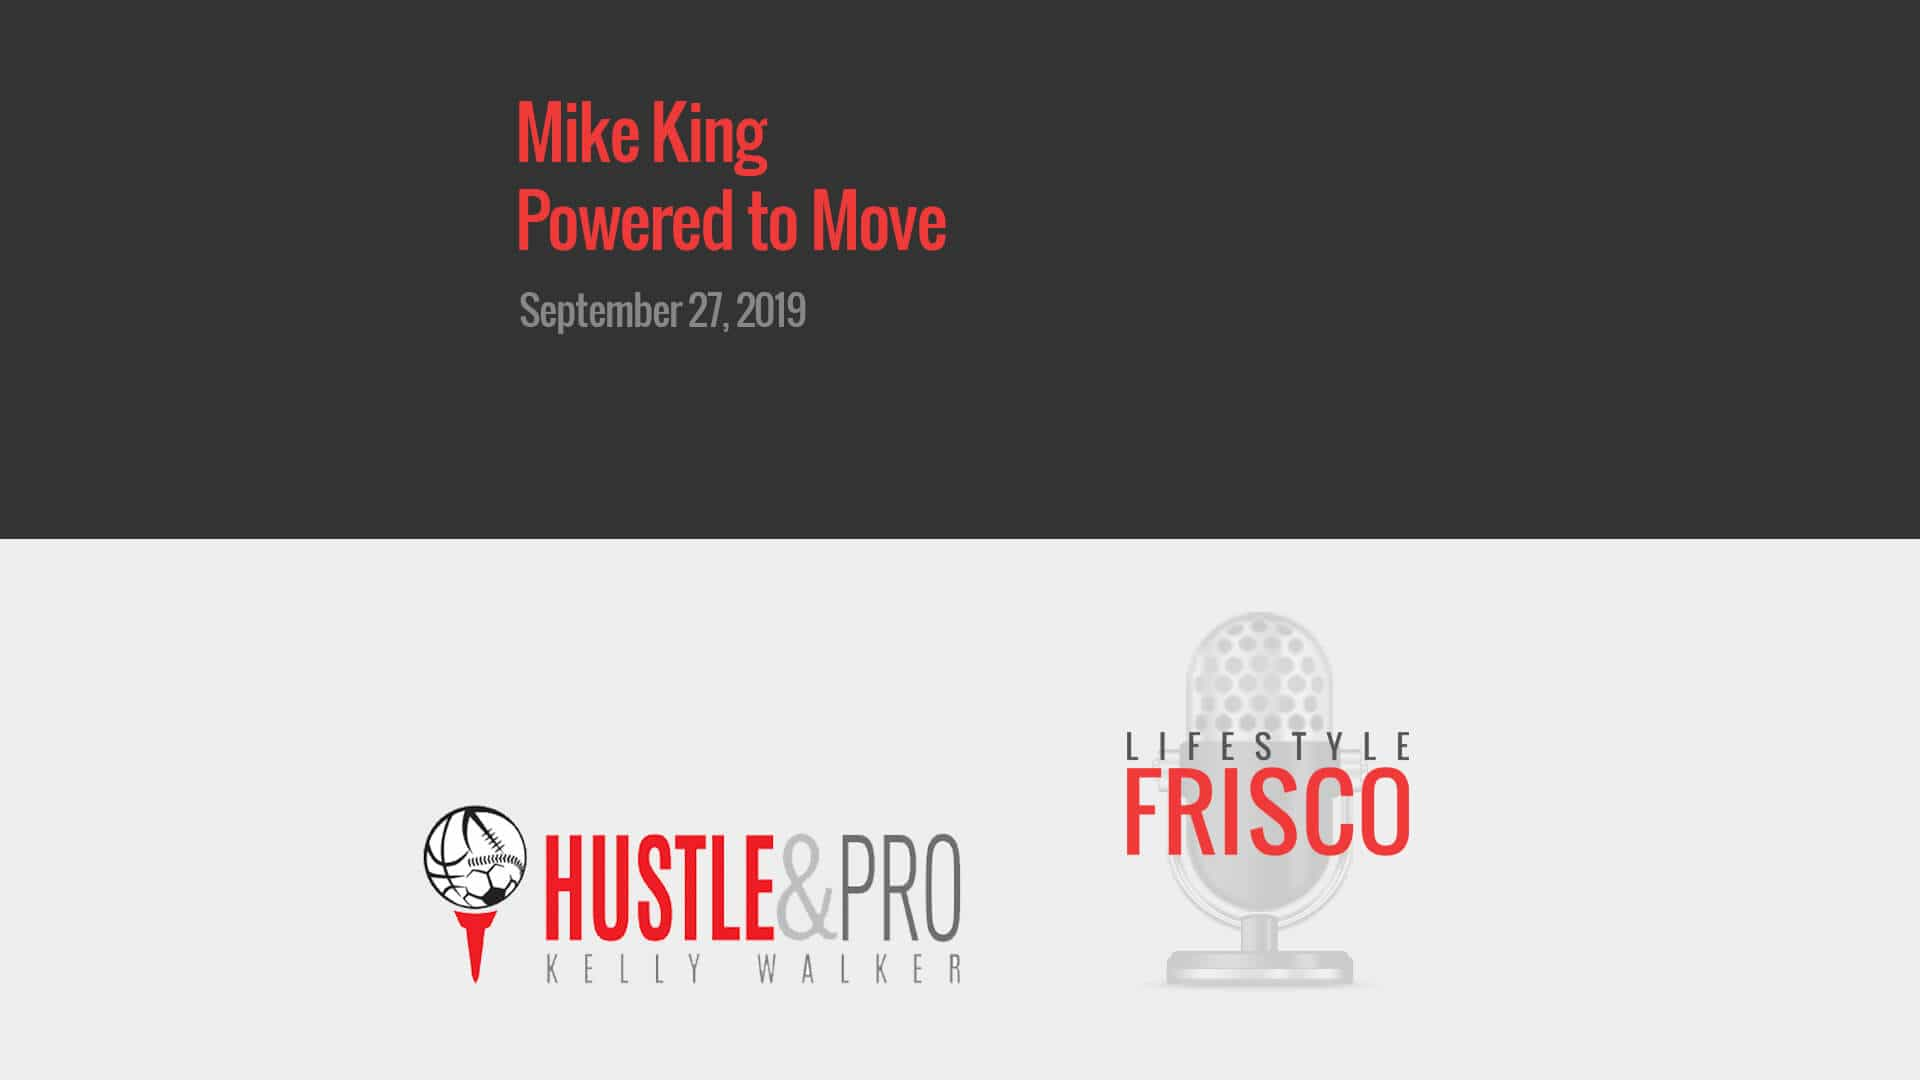 lifestyle frisco podcast Mike King